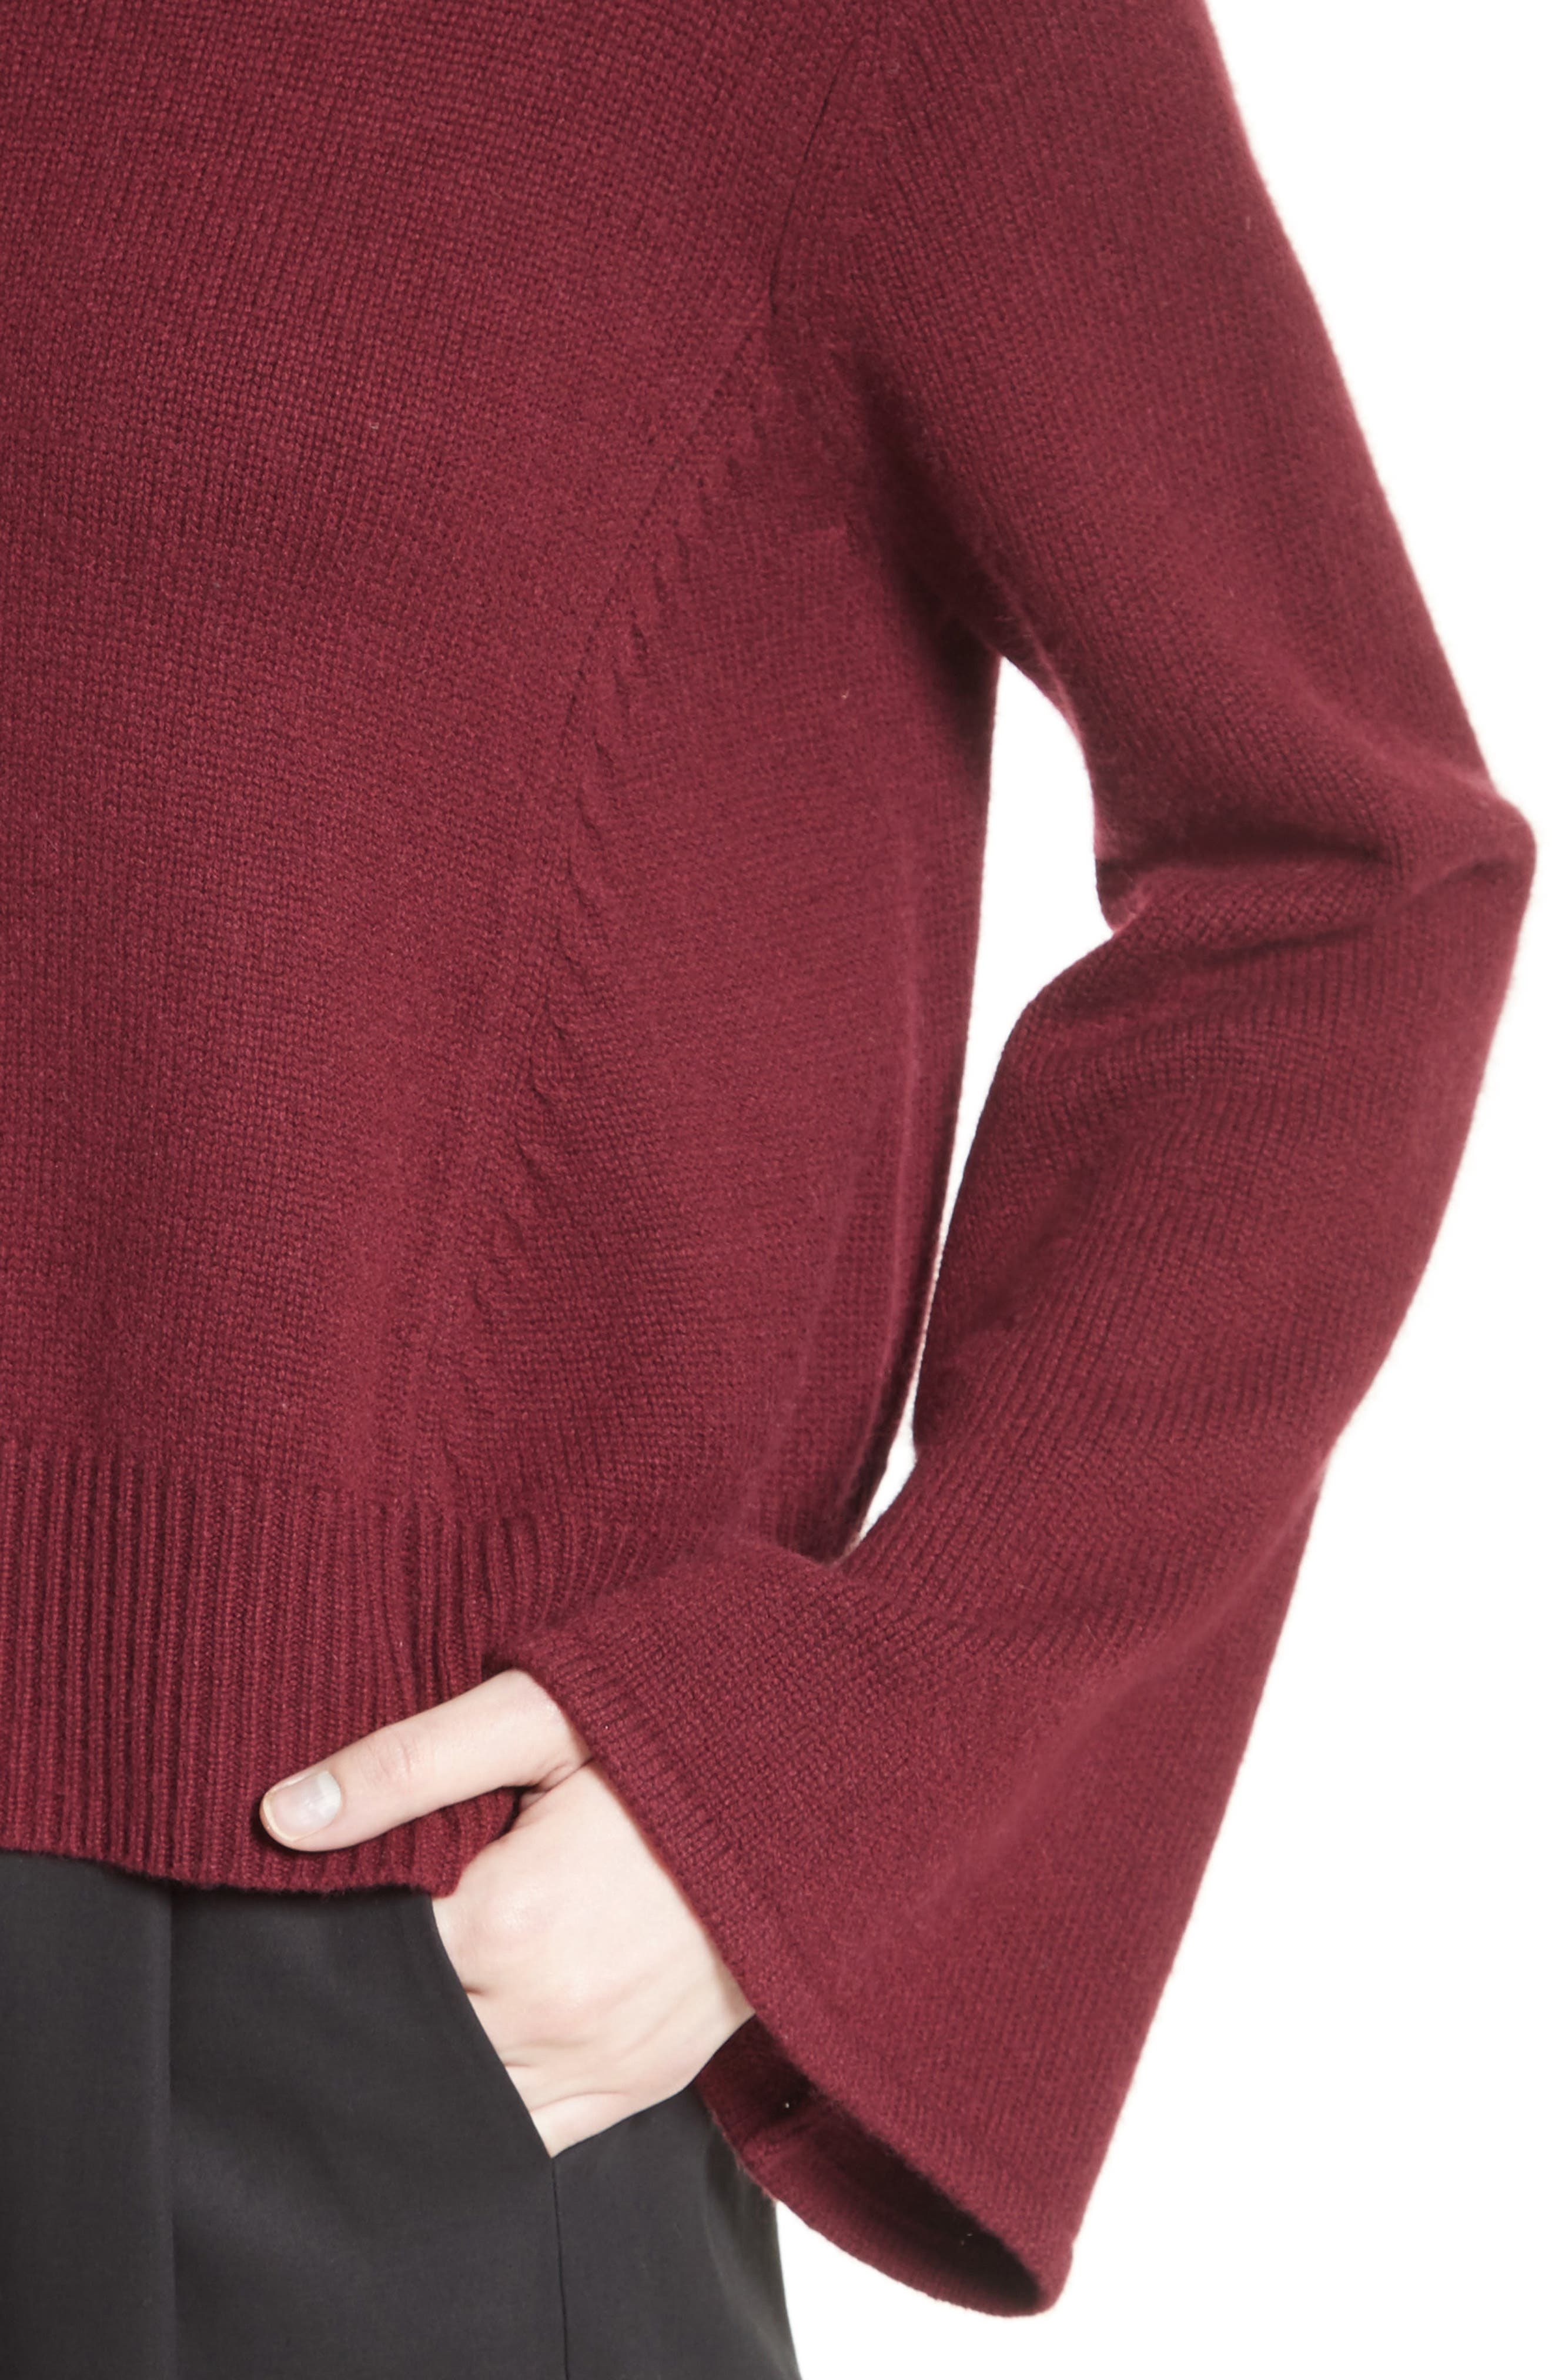 Bell Sleeve Wool & Cashmere Sweater,                             Alternate thumbnail 4, color,                             930